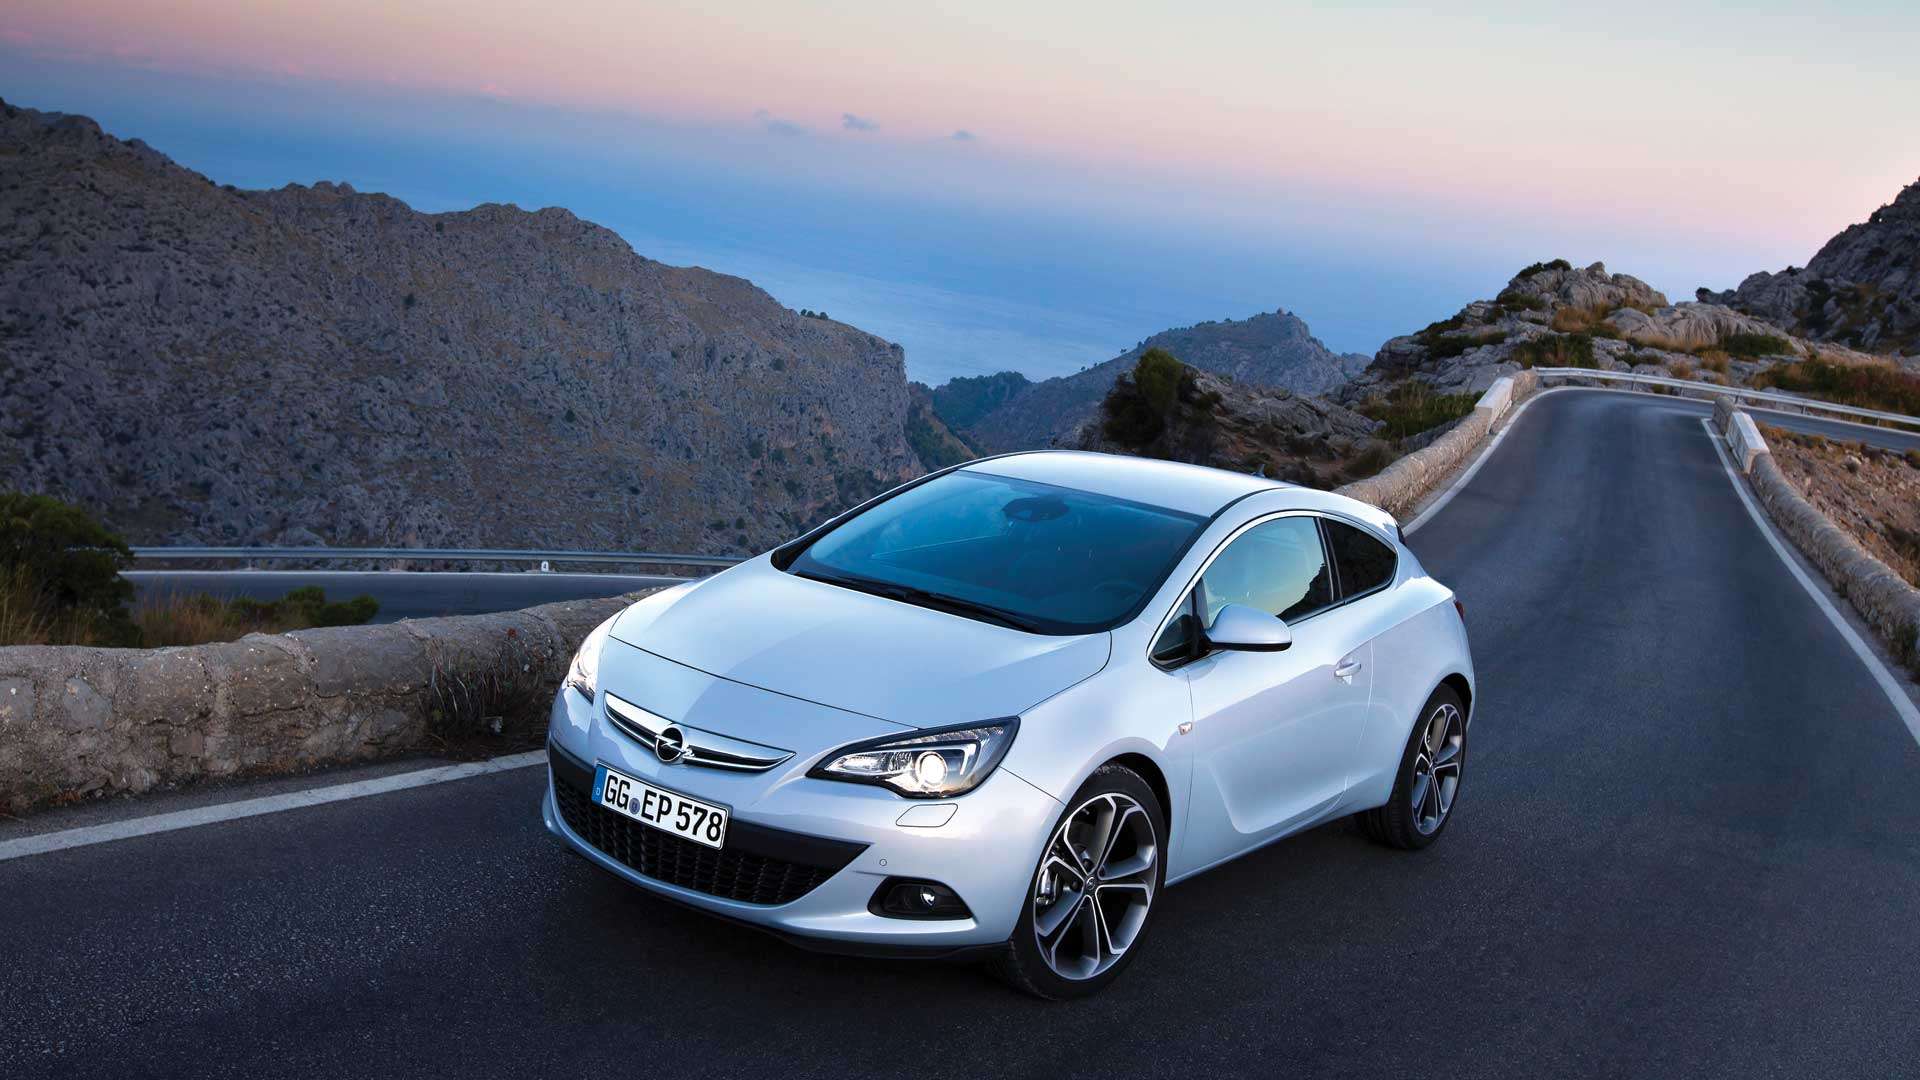 Opel Cars Wallpapers | Ultra High Quality Wallpapers